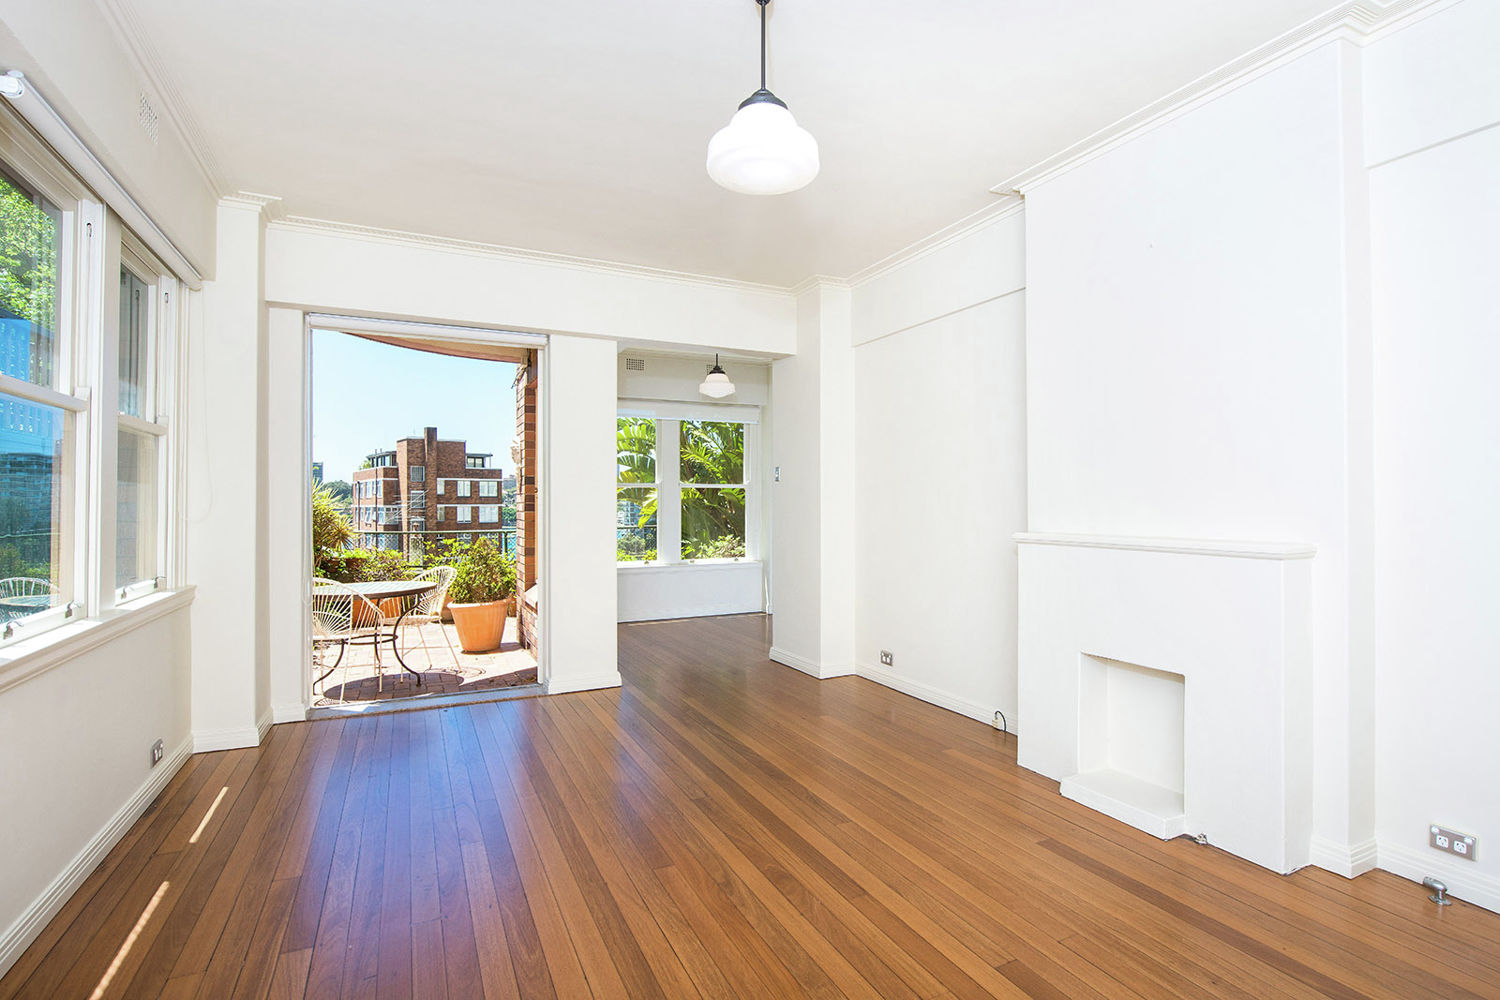 Property For Rent in Potts Point